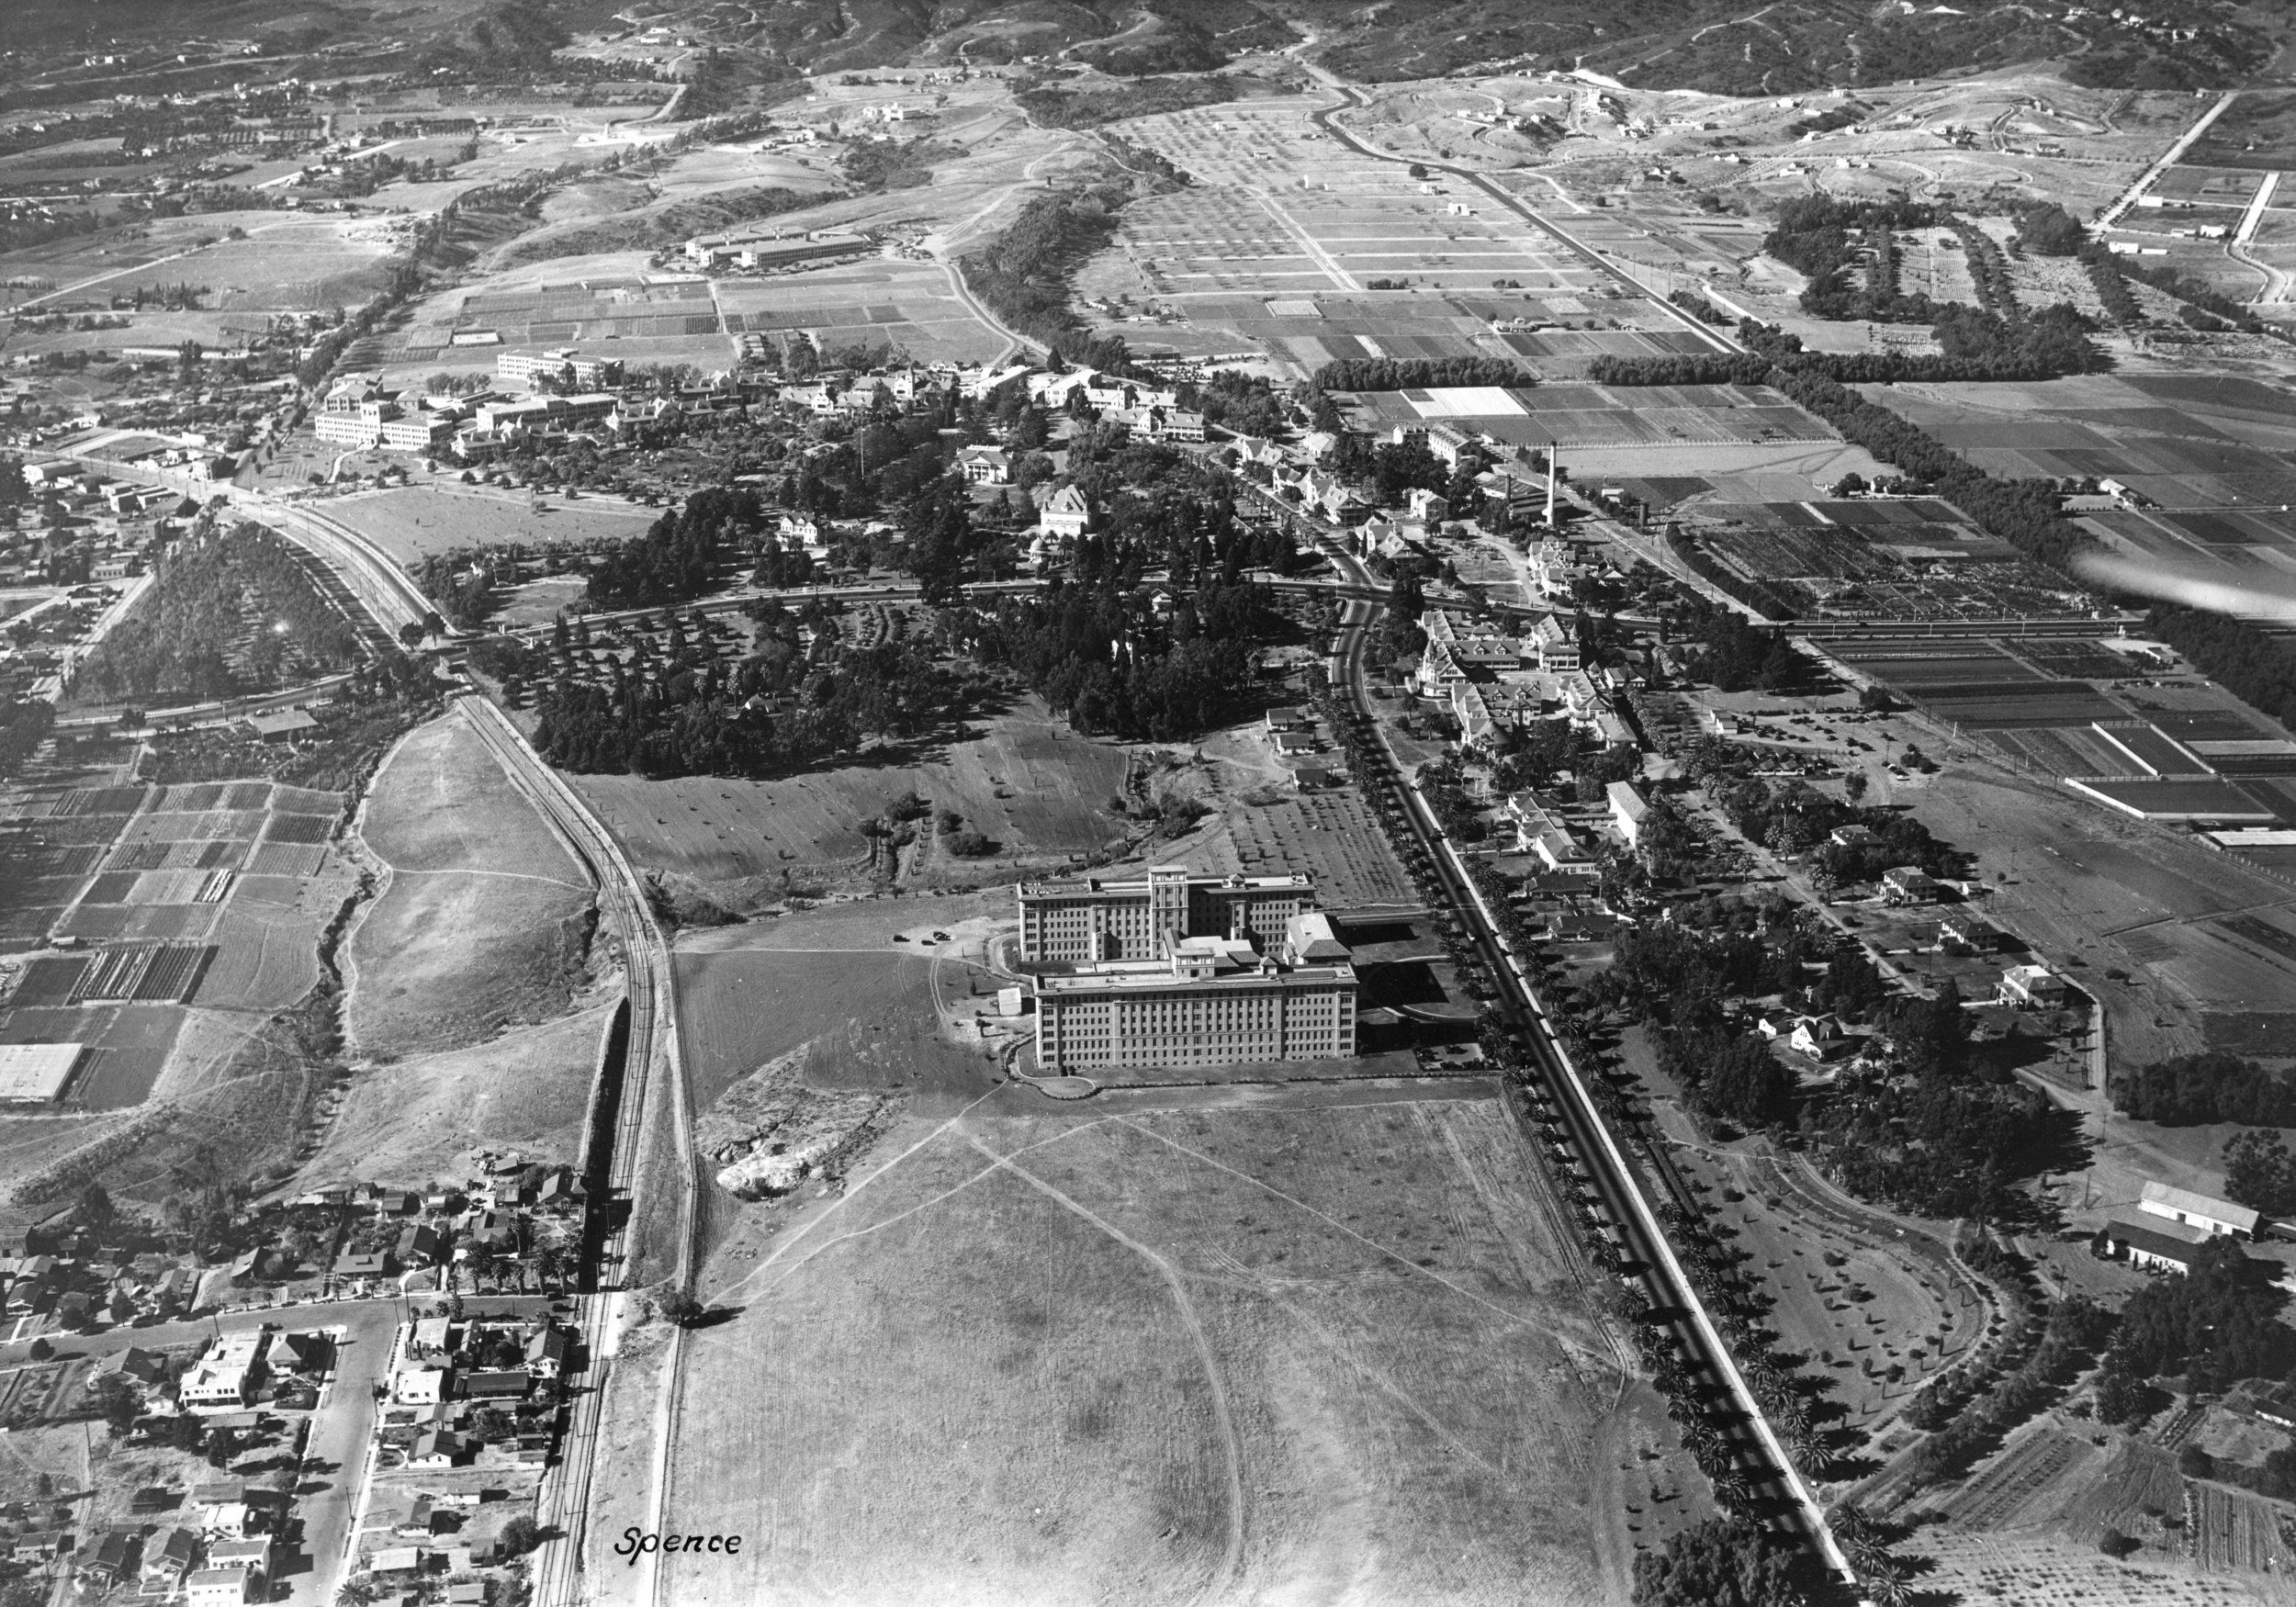 The campus, located at the prominent   intersection of Sepulveda and Wilshire boulevards,   developed in response to changing health requirements and numbers of veterans and includes large, landscaped grounds that have been enjoyed by veterans, their families, and other visitors.  Photo courtesy of Department of Veterans Affairs archives.